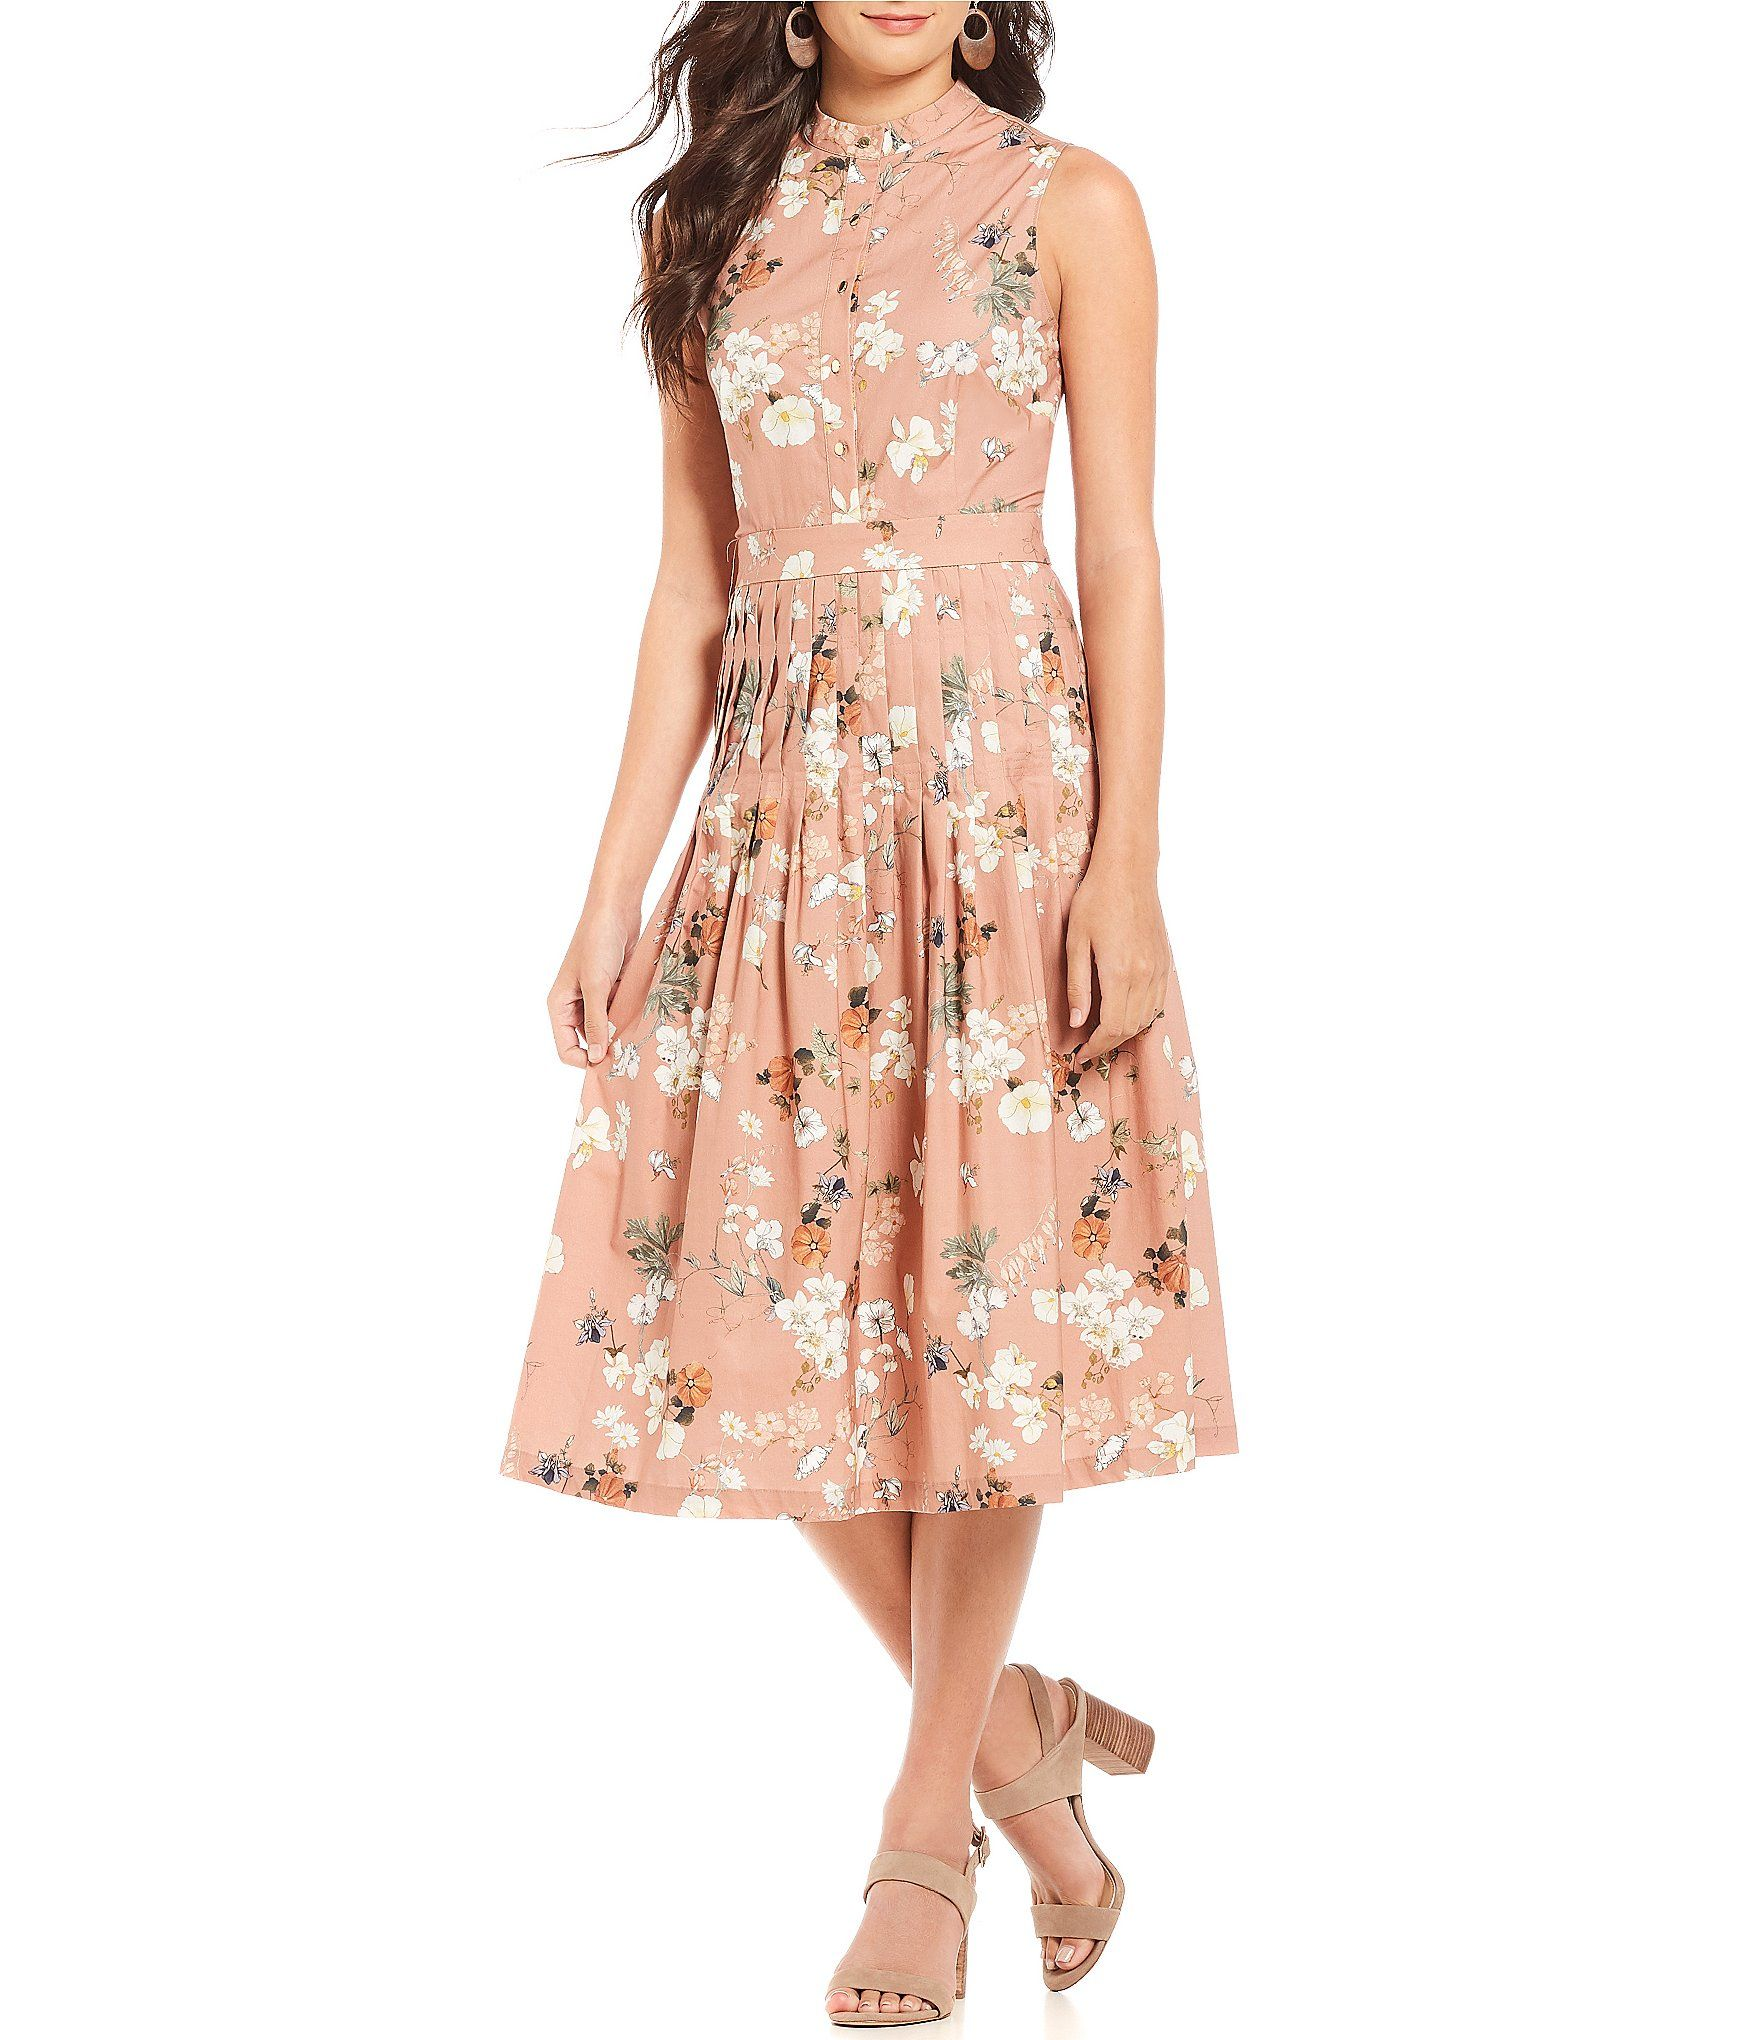 e450d2e3e7c Antonio Melani Connie Floral Print Midi Dress  Dillards